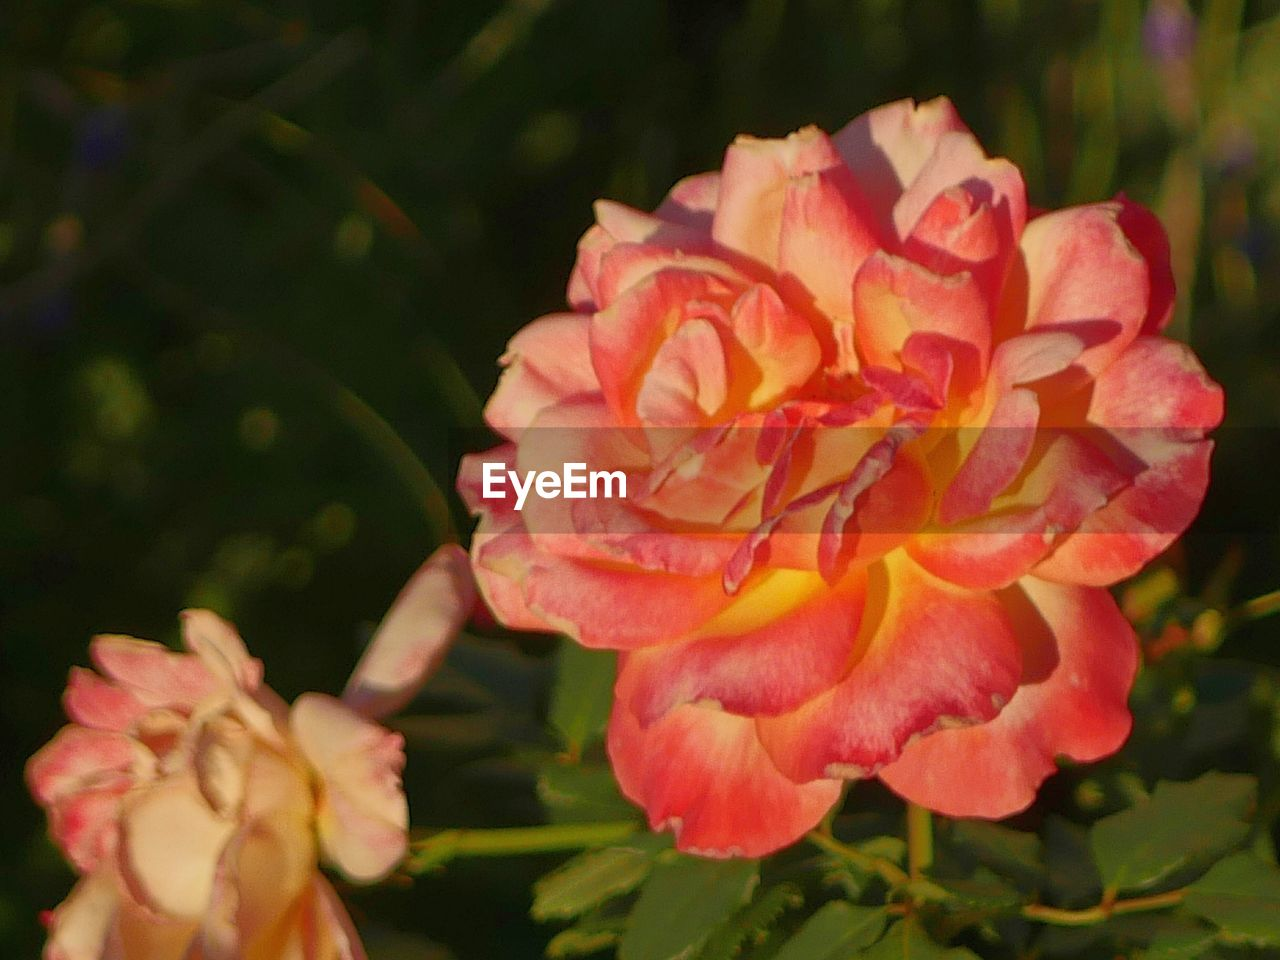 flower, flowering plant, plant, petal, beauty in nature, vulnerability, growth, freshness, fragility, close-up, inflorescence, flower head, nature, no people, focus on foreground, day, outdoors, sunlight, rose, pink color